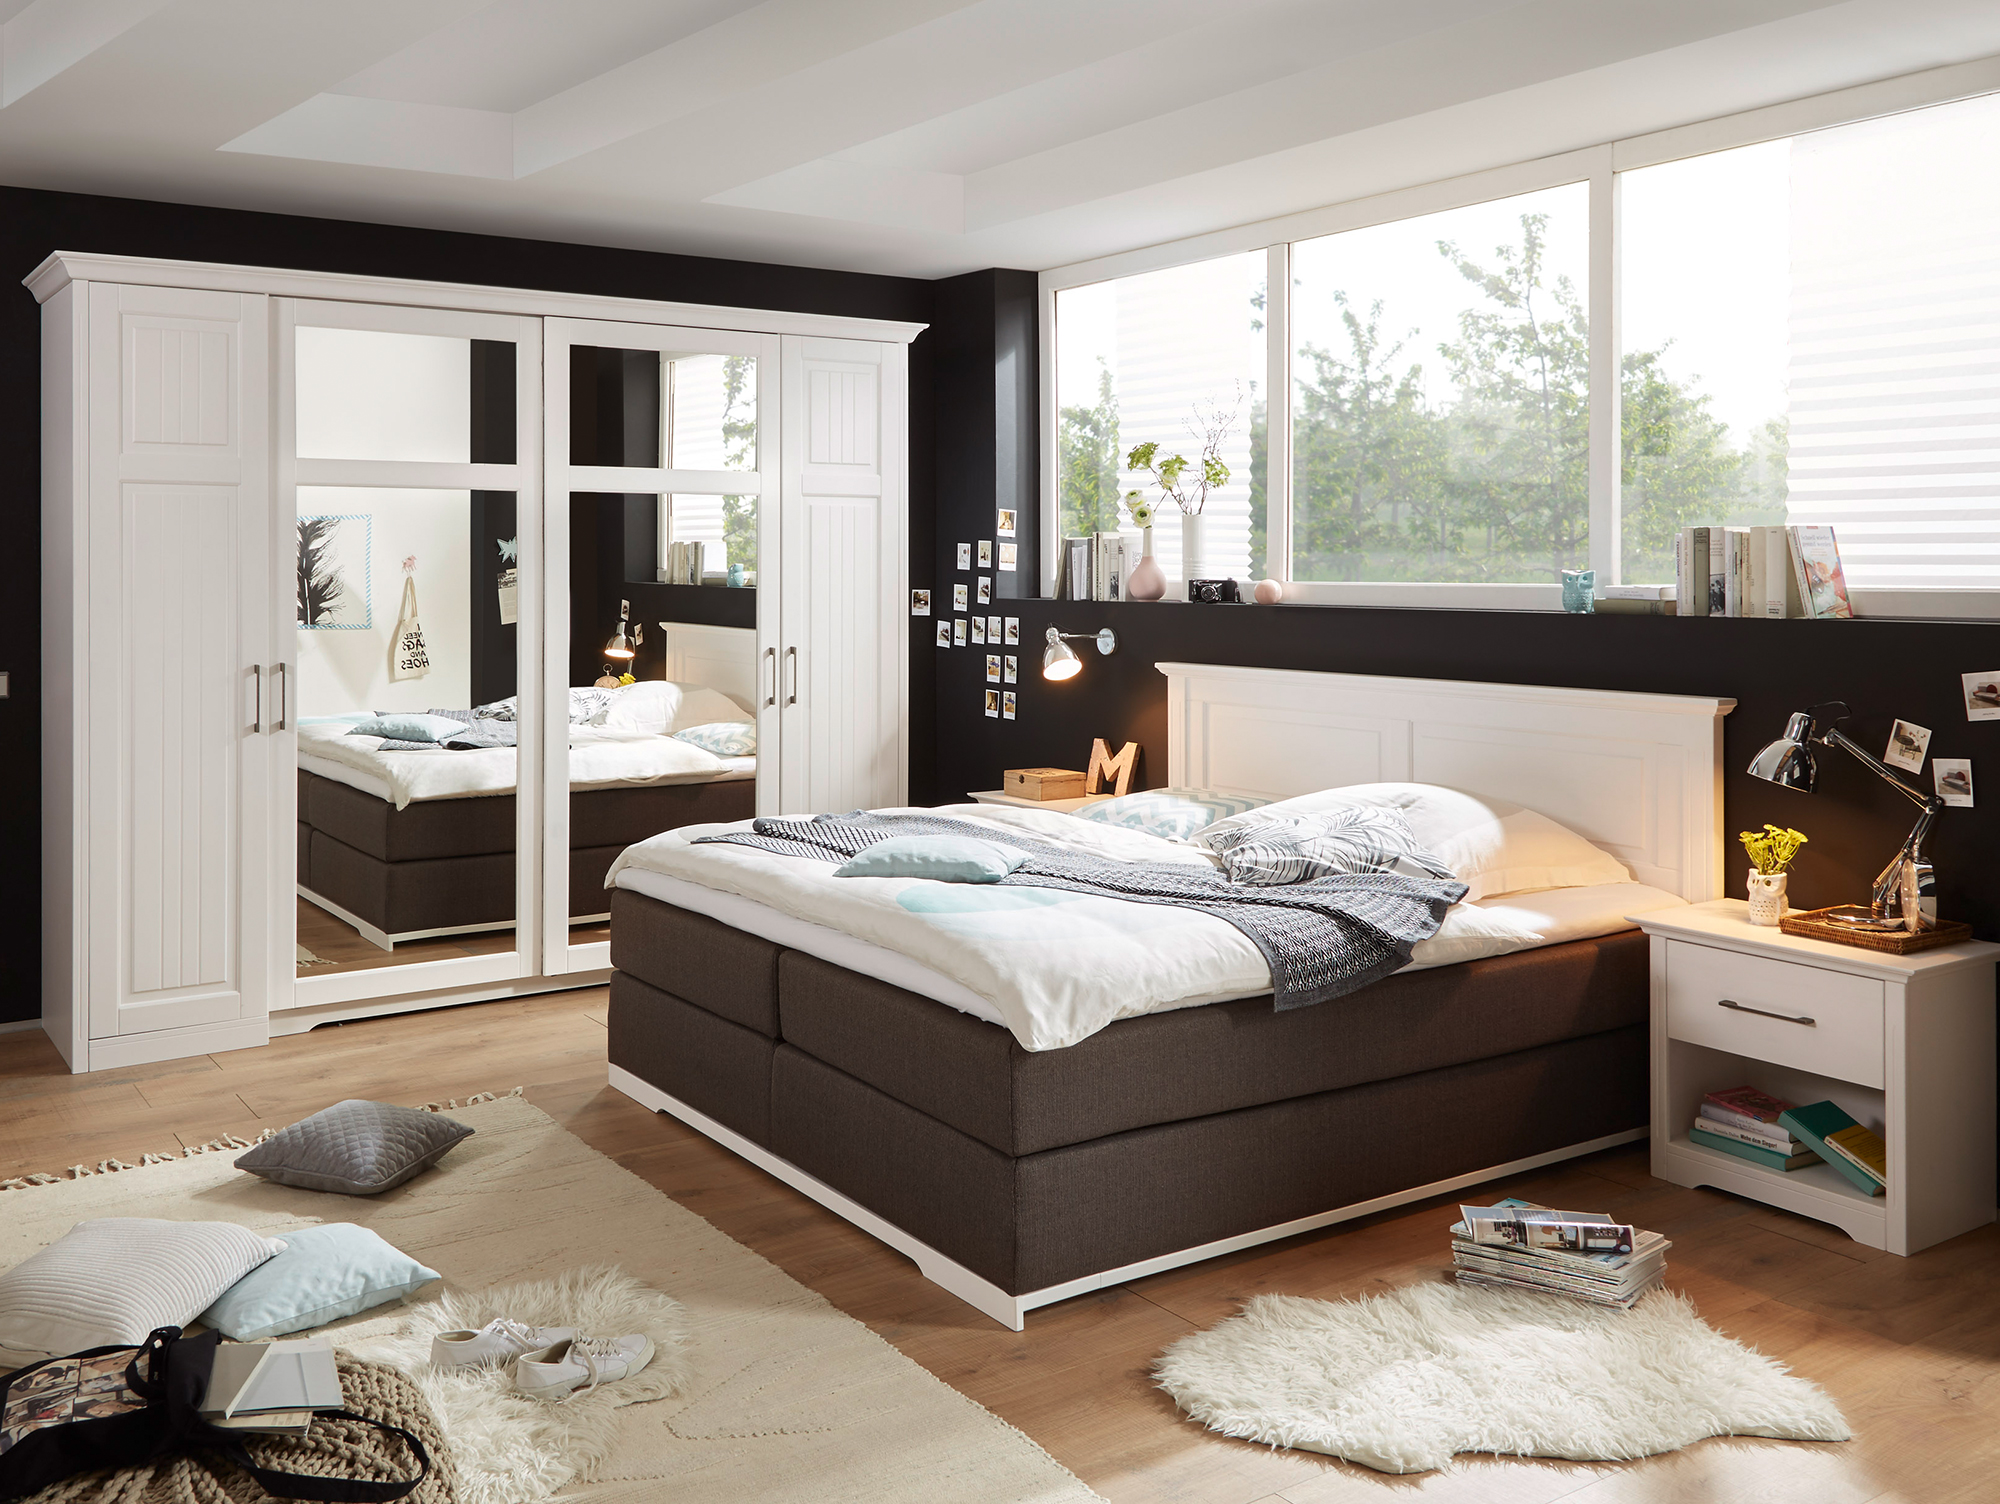 samira kleiderschrank 4trg kiefer massiv weiss. Black Bedroom Furniture Sets. Home Design Ideas